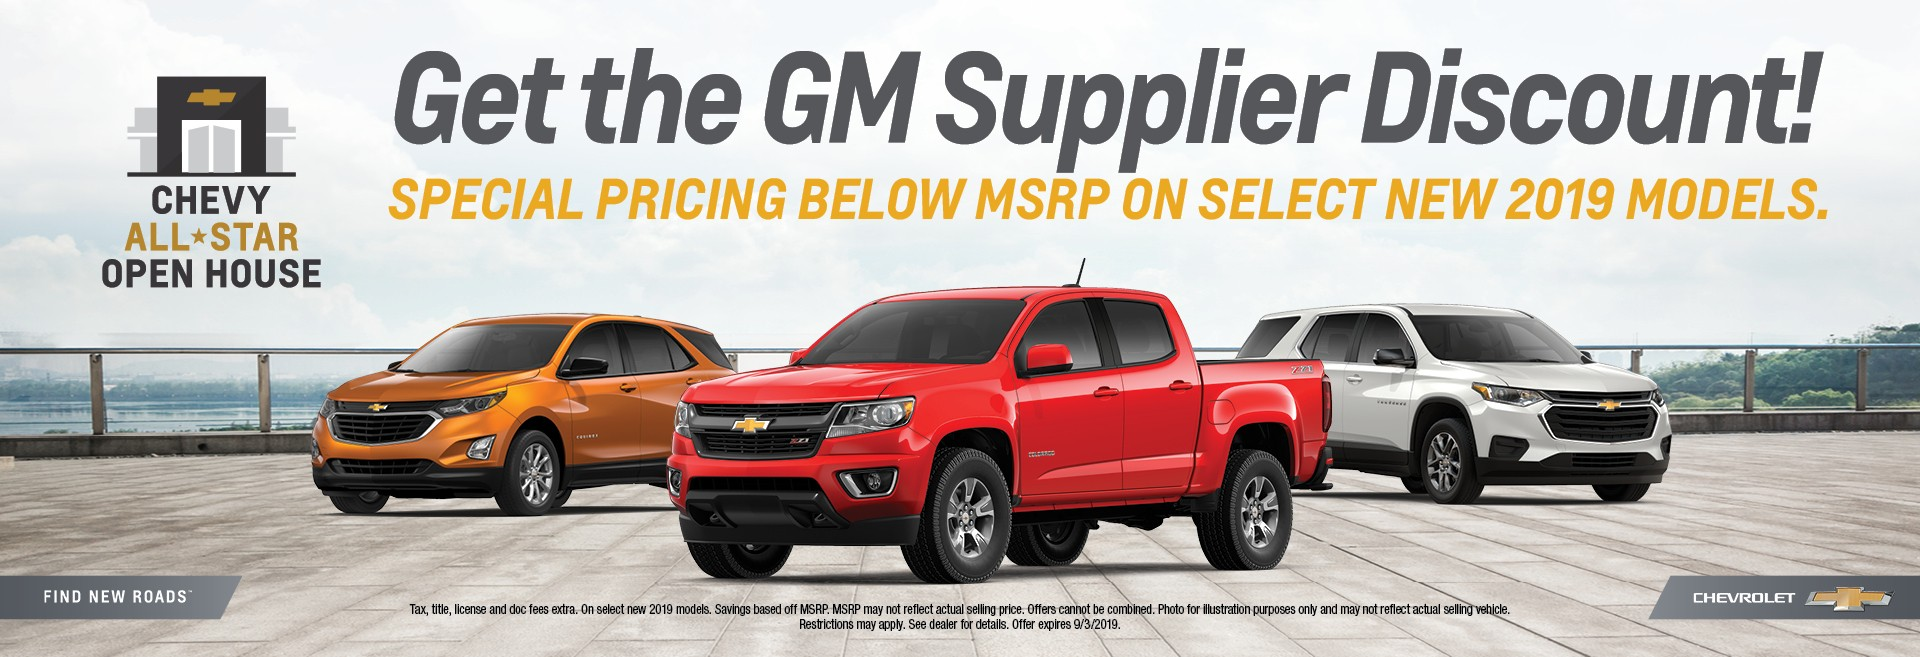 Get the GM supplier Discount